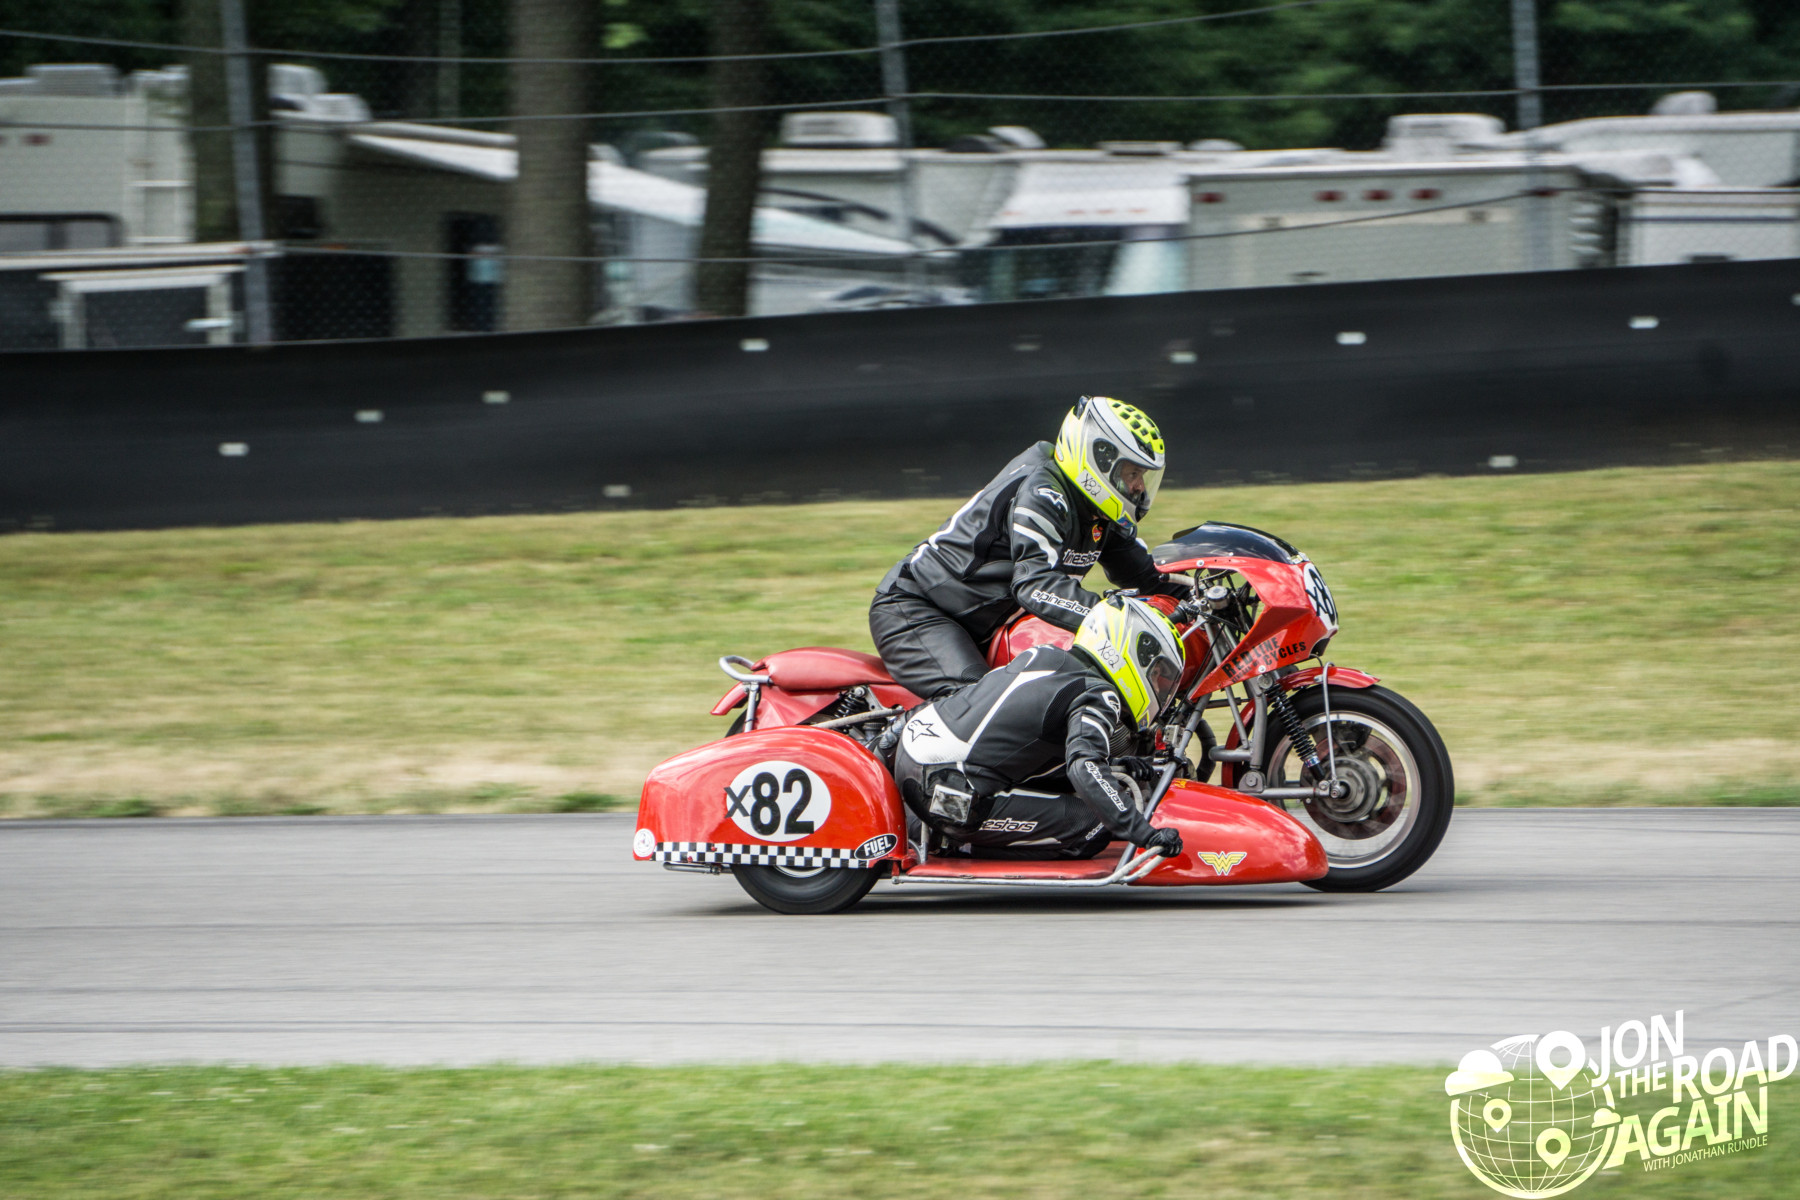 Sidecar Motorcycle racing at mid-ohio at AMA Vintage Motorcycle Days